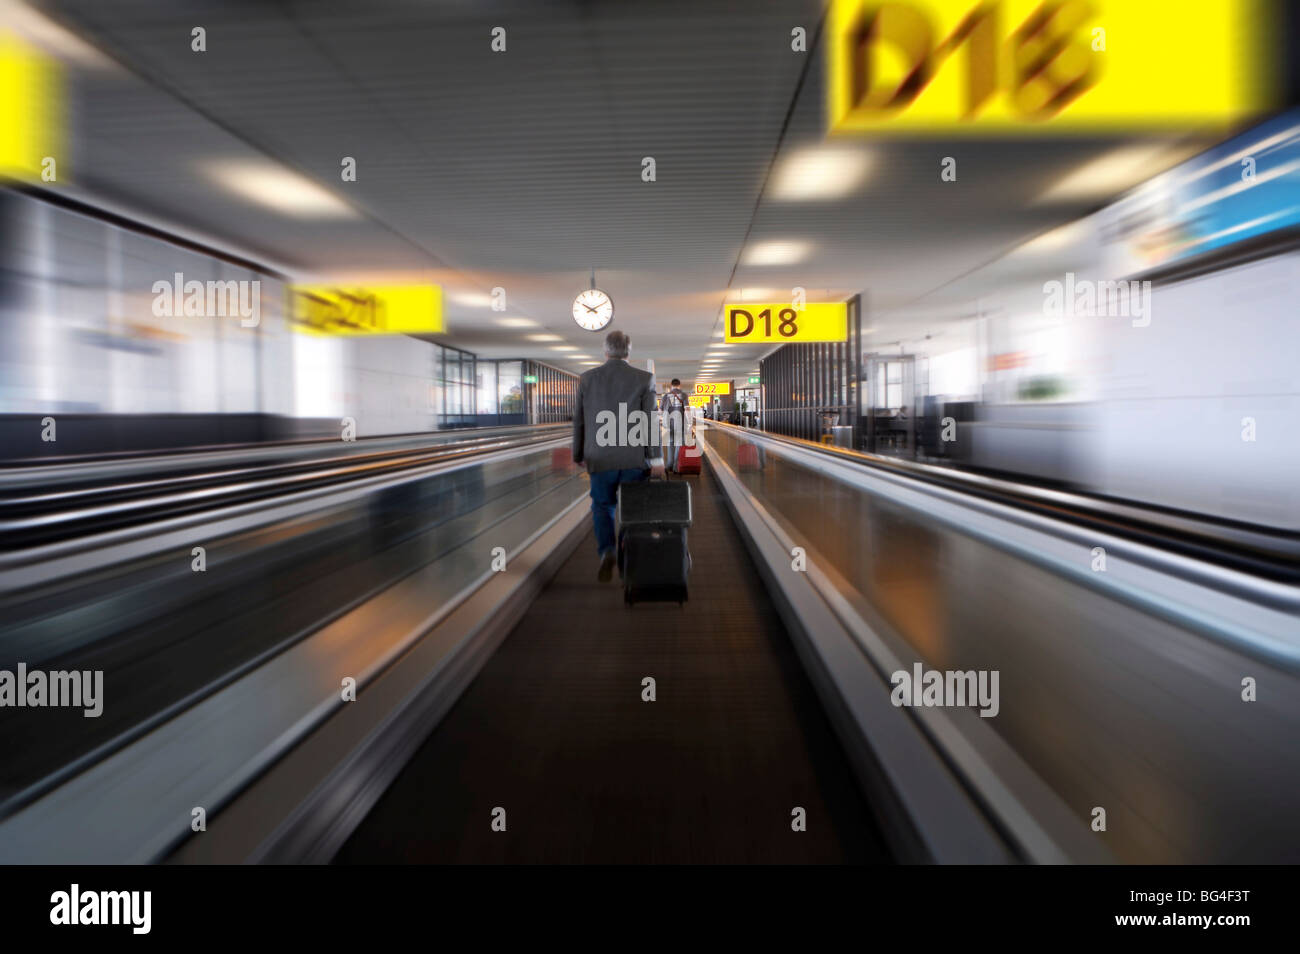 Businessman with luggage on travelator at Schiphol airport, Amsterdam, Netherlands, Europe - Stock Image